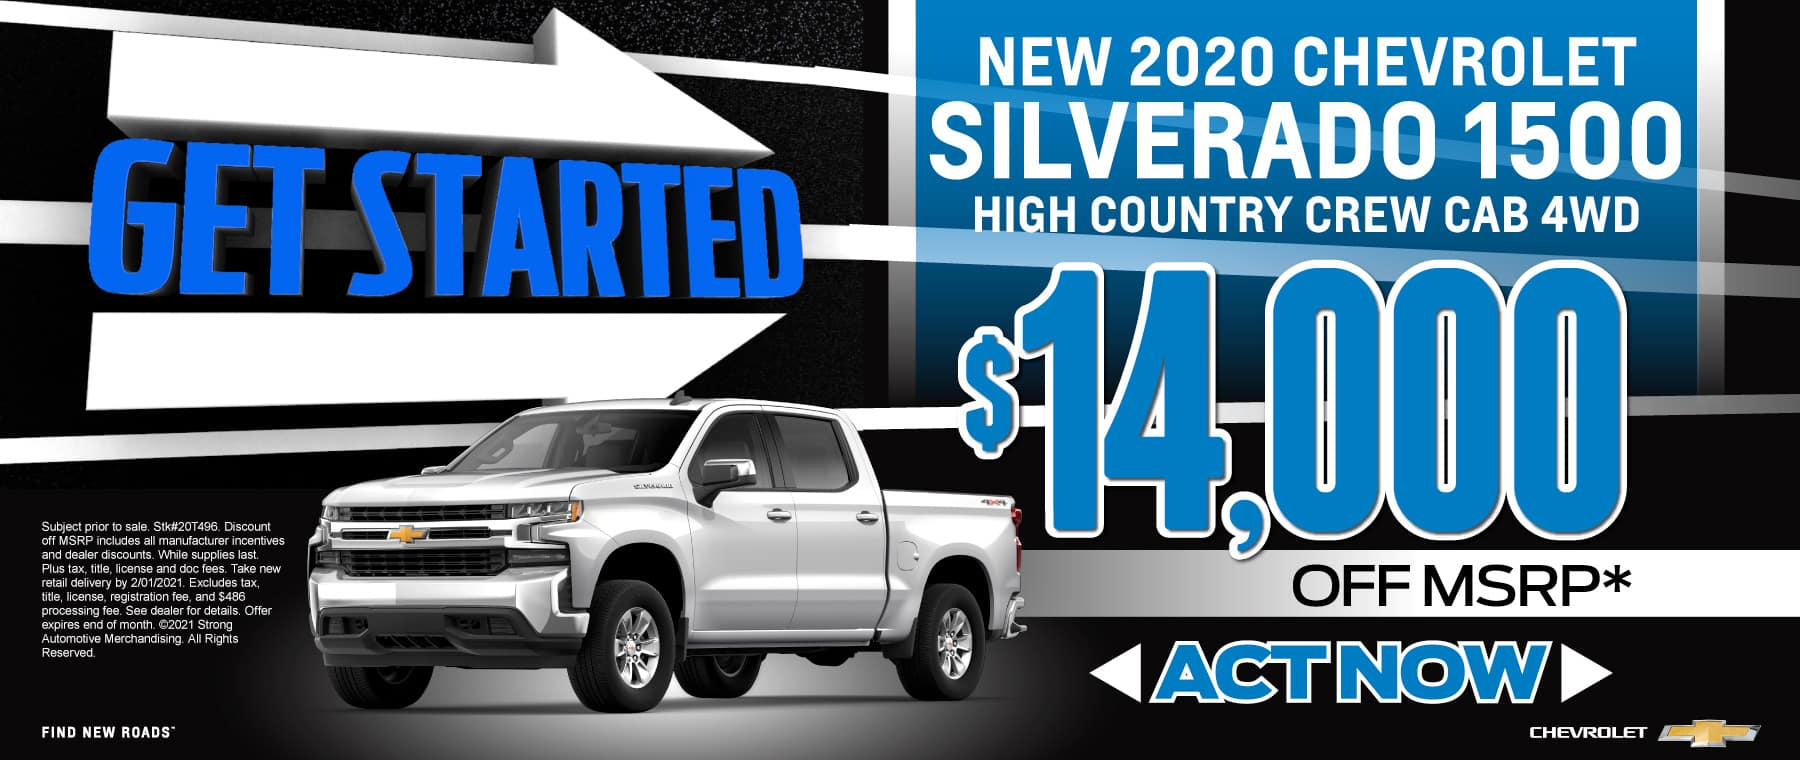 New 2020 Chevy Silverado - up to $14,000 off msrp - Act now